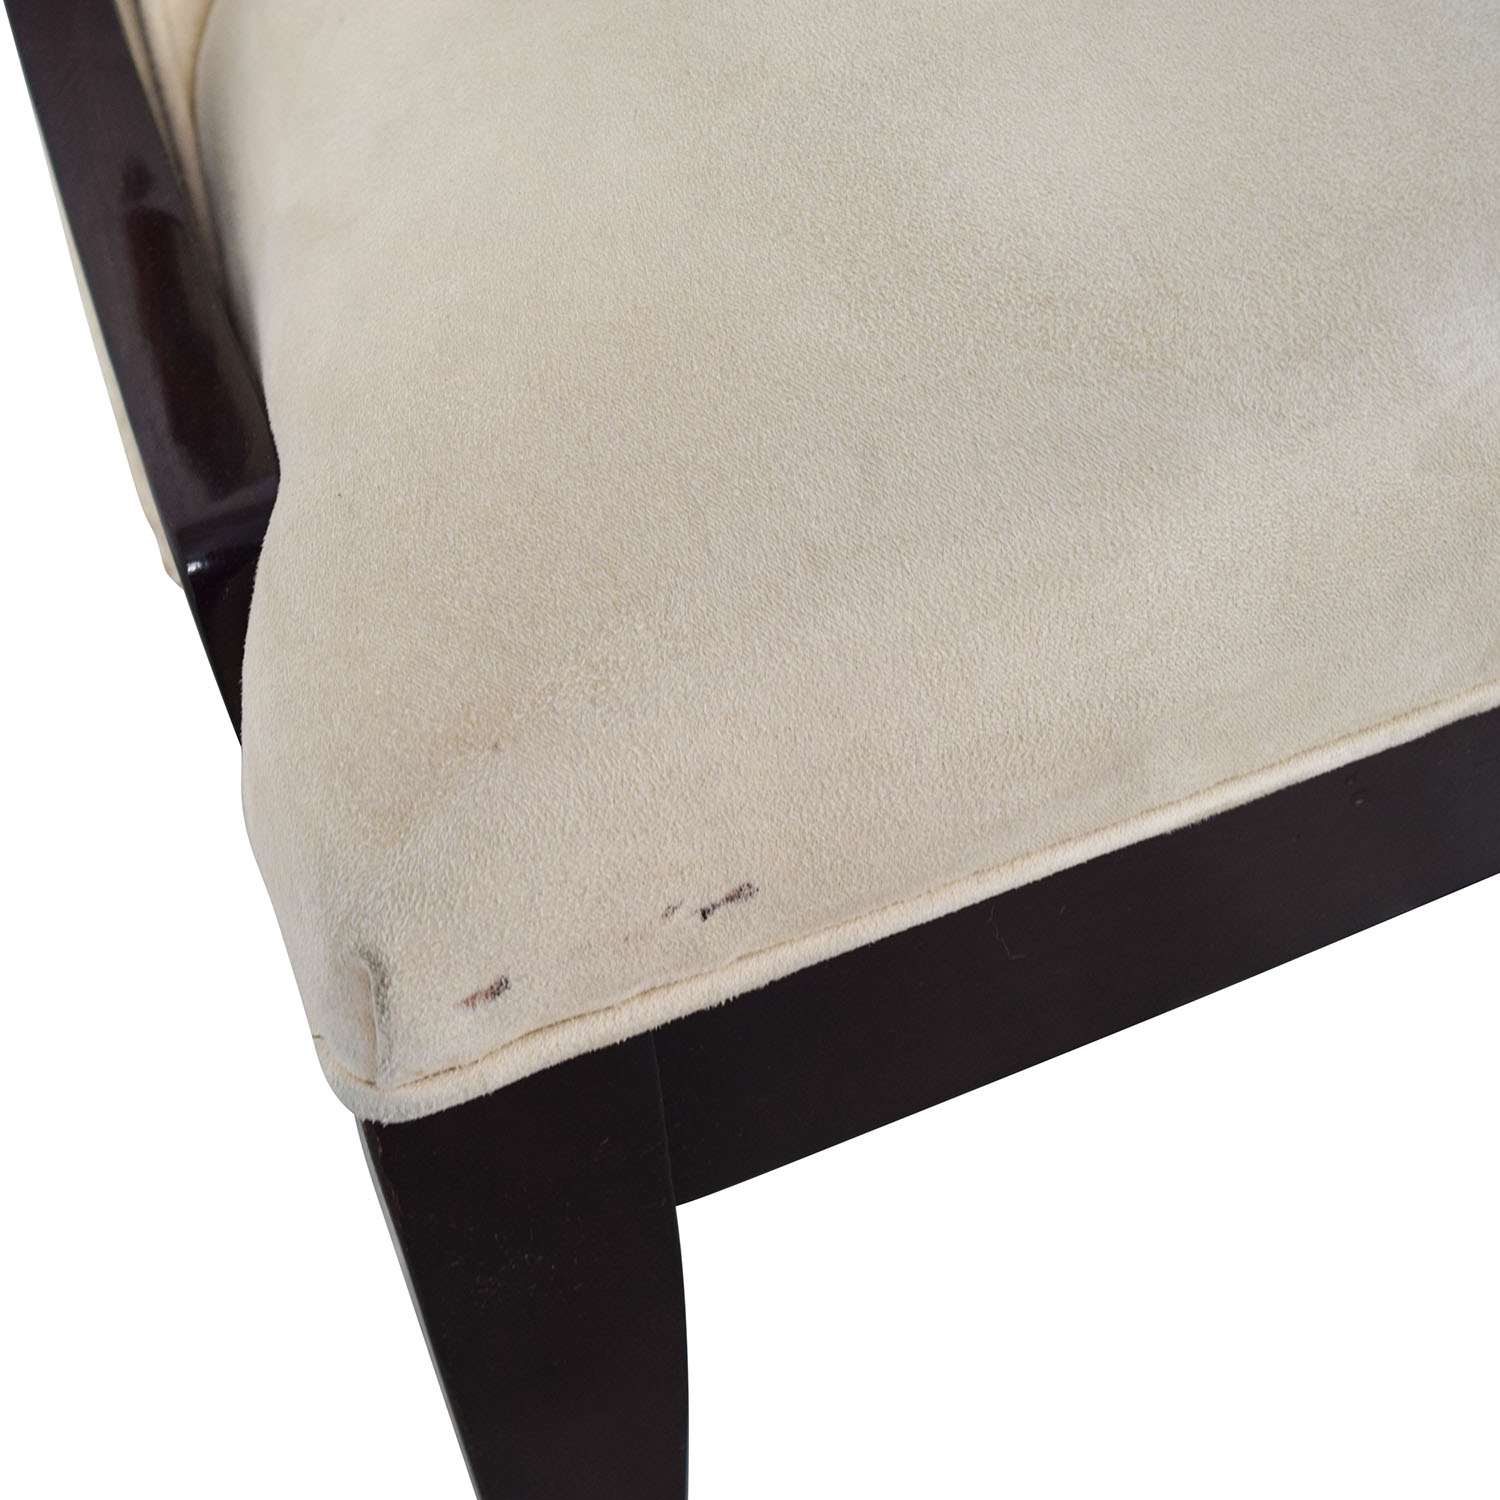 Restoration Hardware Restoration Hardware Cream Upholstered Dining Chairs discount